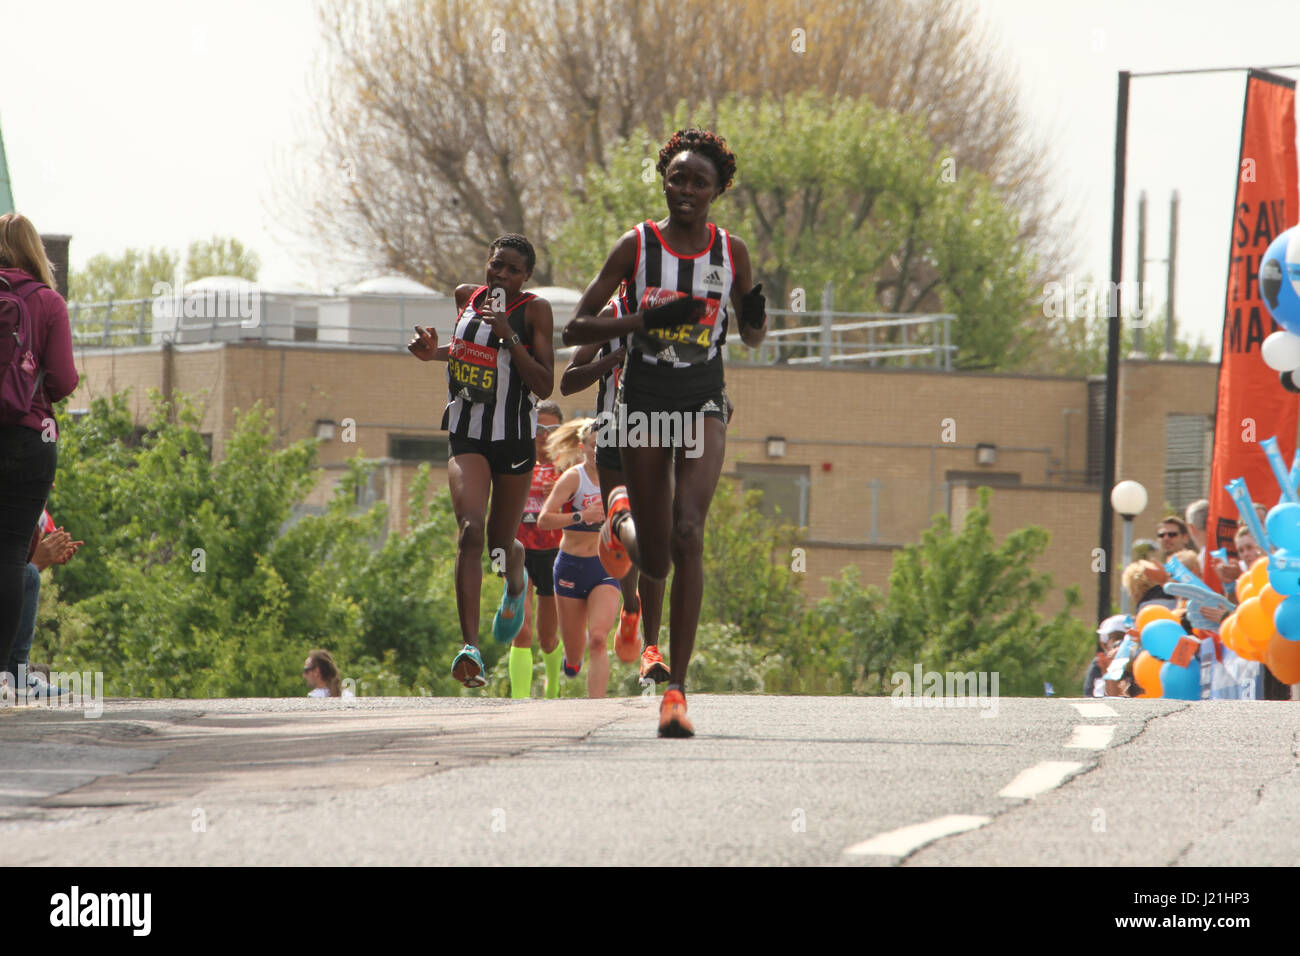 London, UK. 23rd Apr, 2017.  Pace runners race past the 17 mile mark at Madchutte during the 37th London Marathon - Stock Image